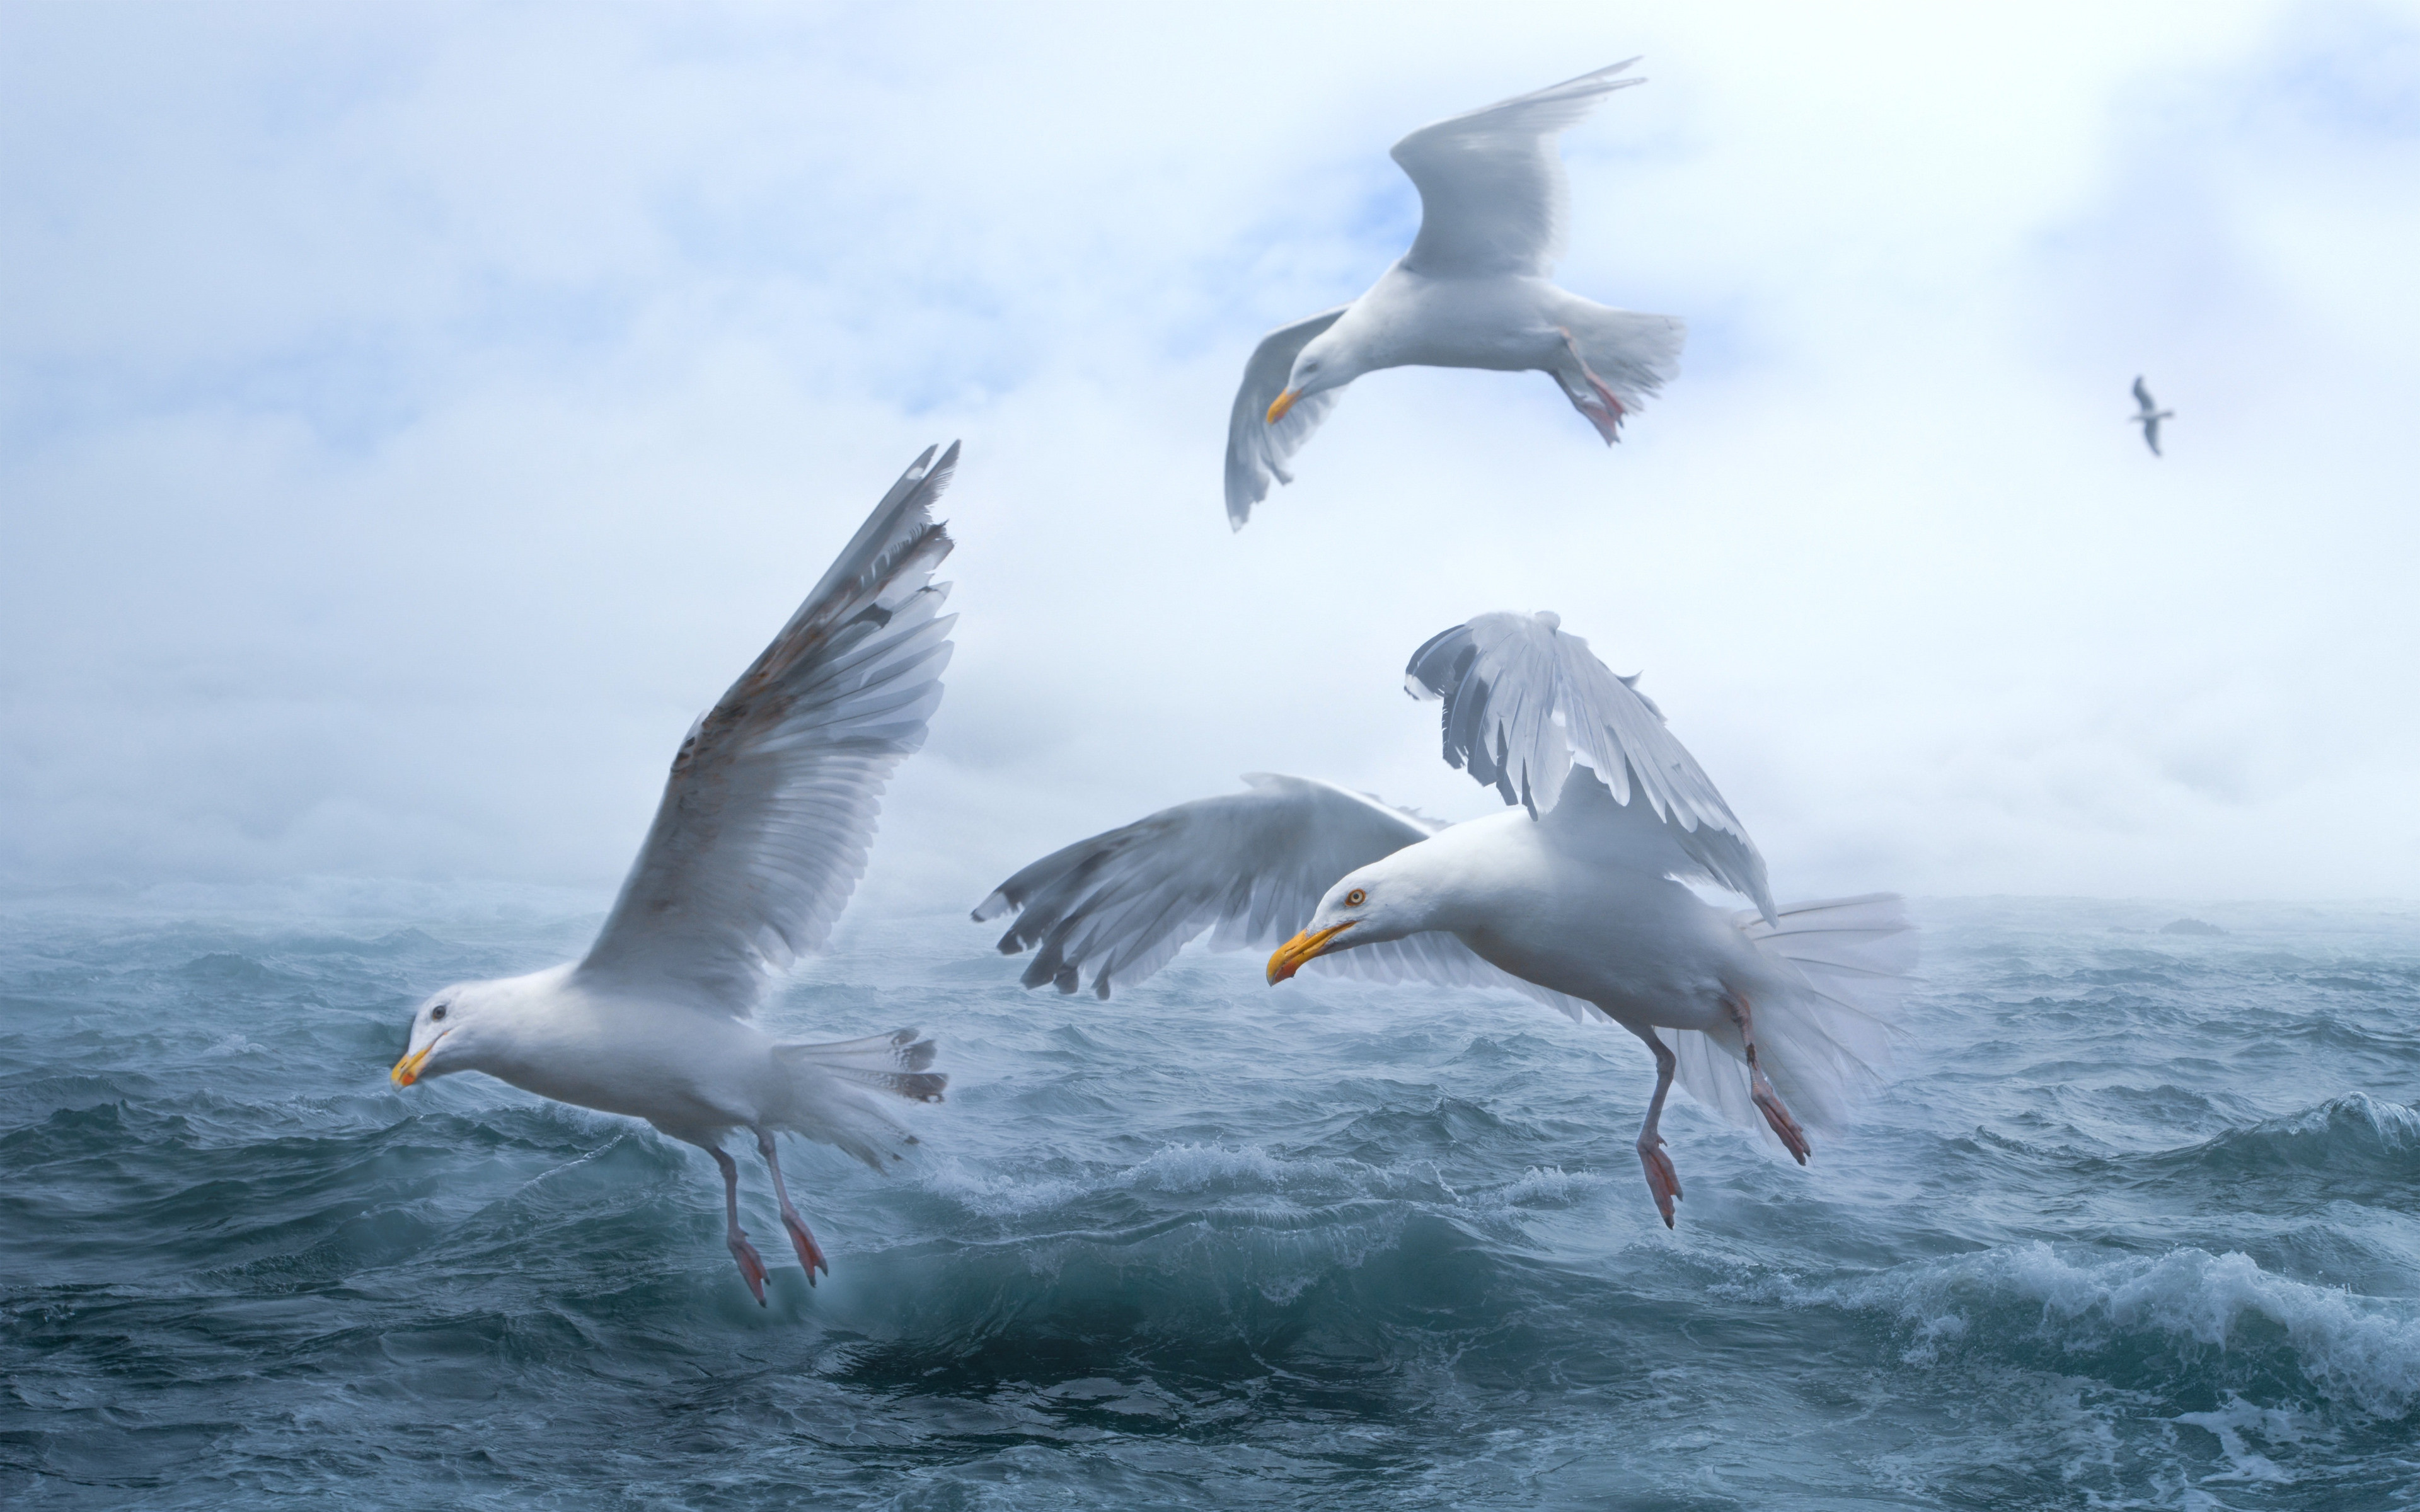 Seagulls above sea waves wallpaper 3840x2400